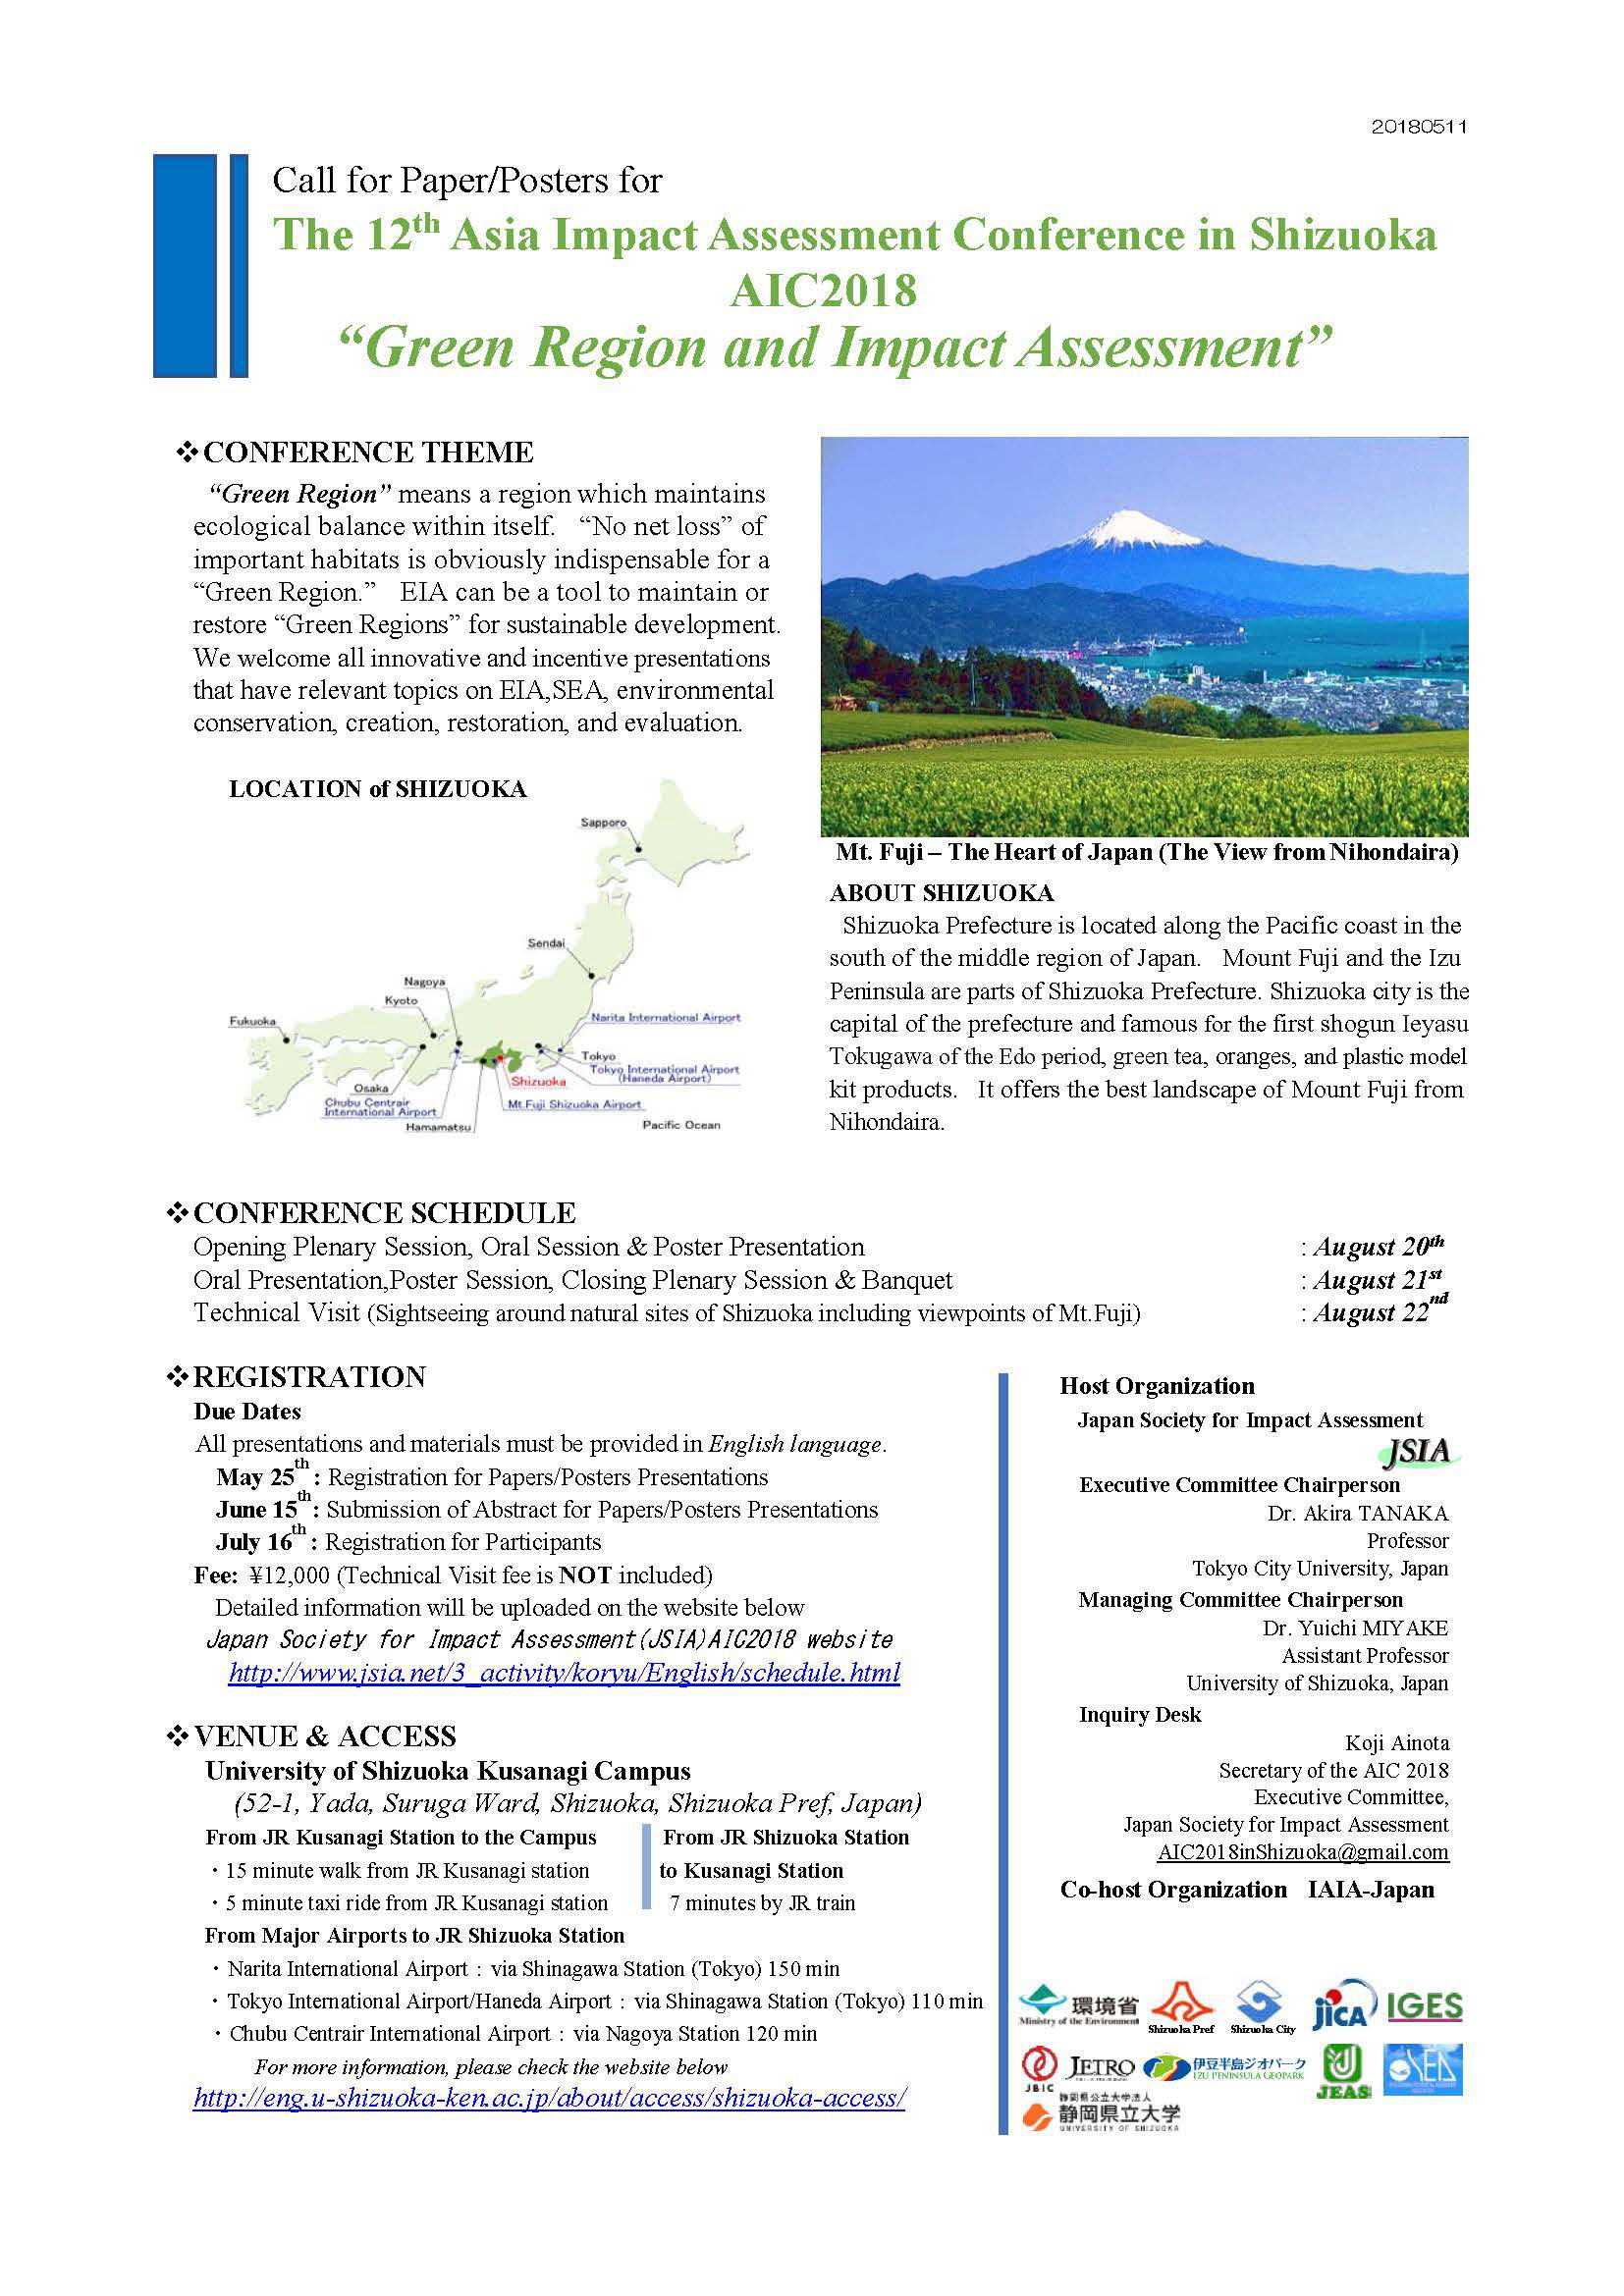 The 12th Asia Impact Assessment Conference in Shizuoka